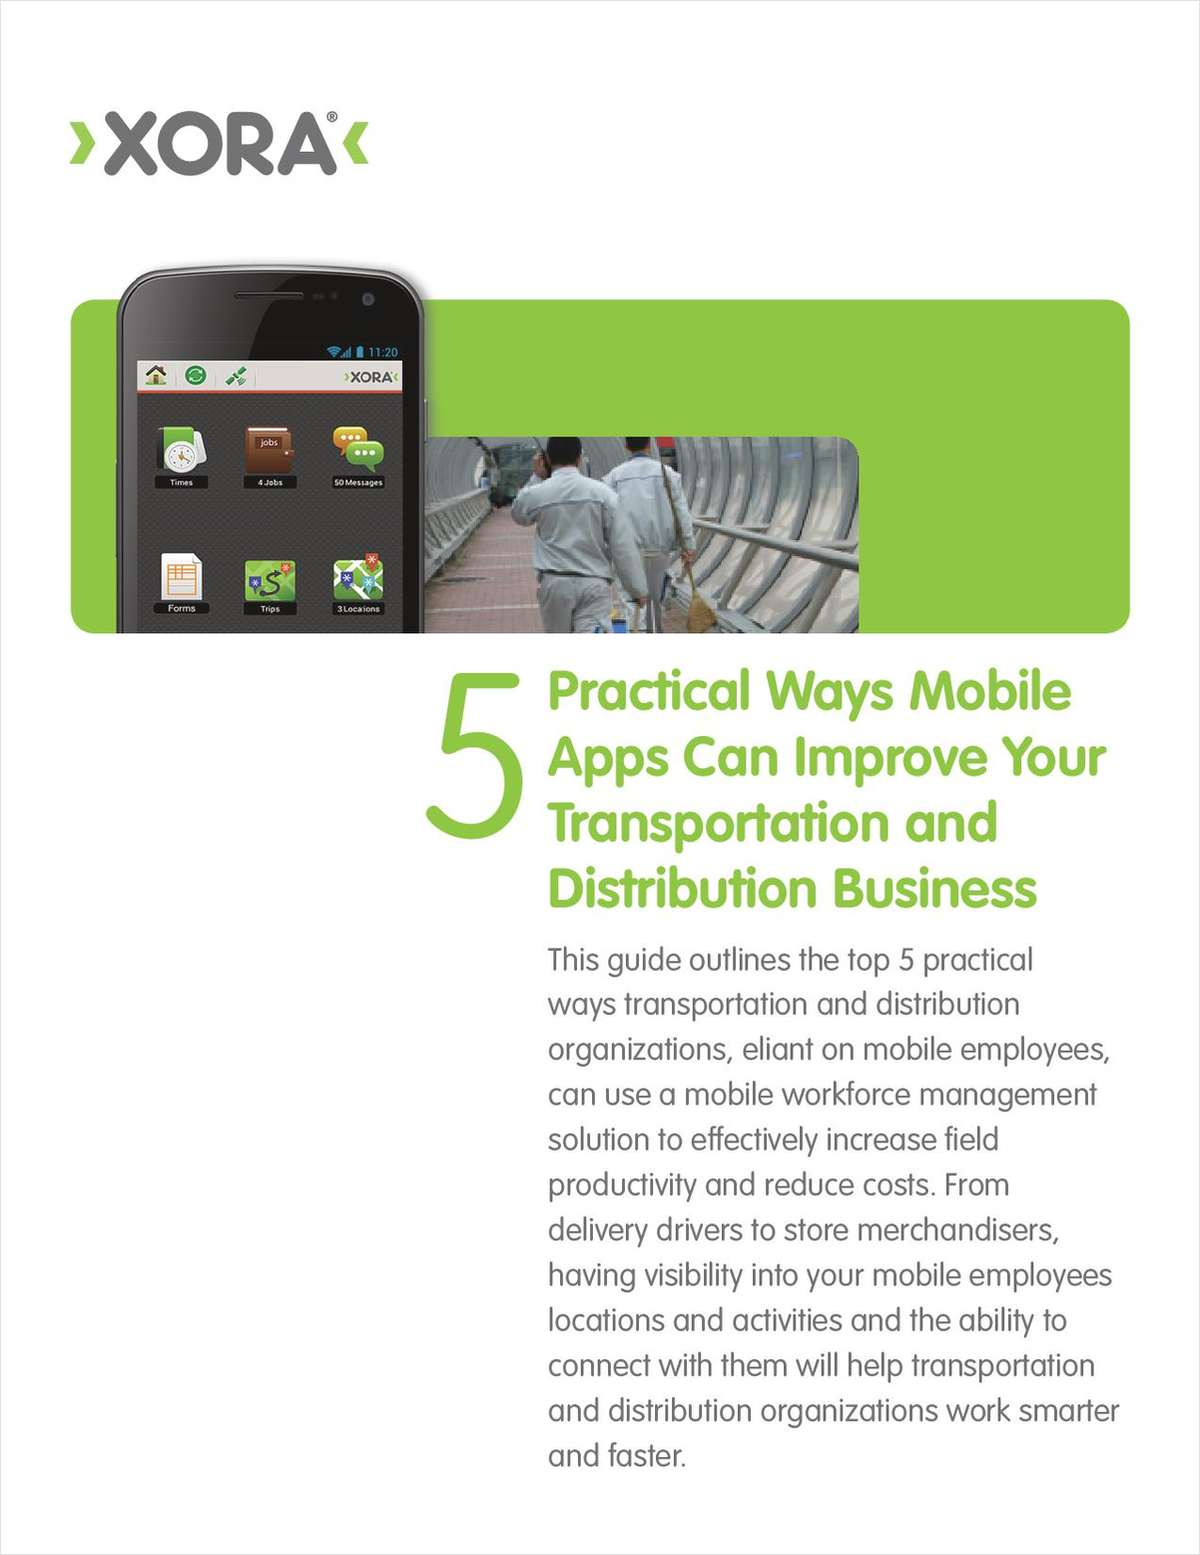 Top 5 Ways Mobile Apps Can Improve Transportation Businesses